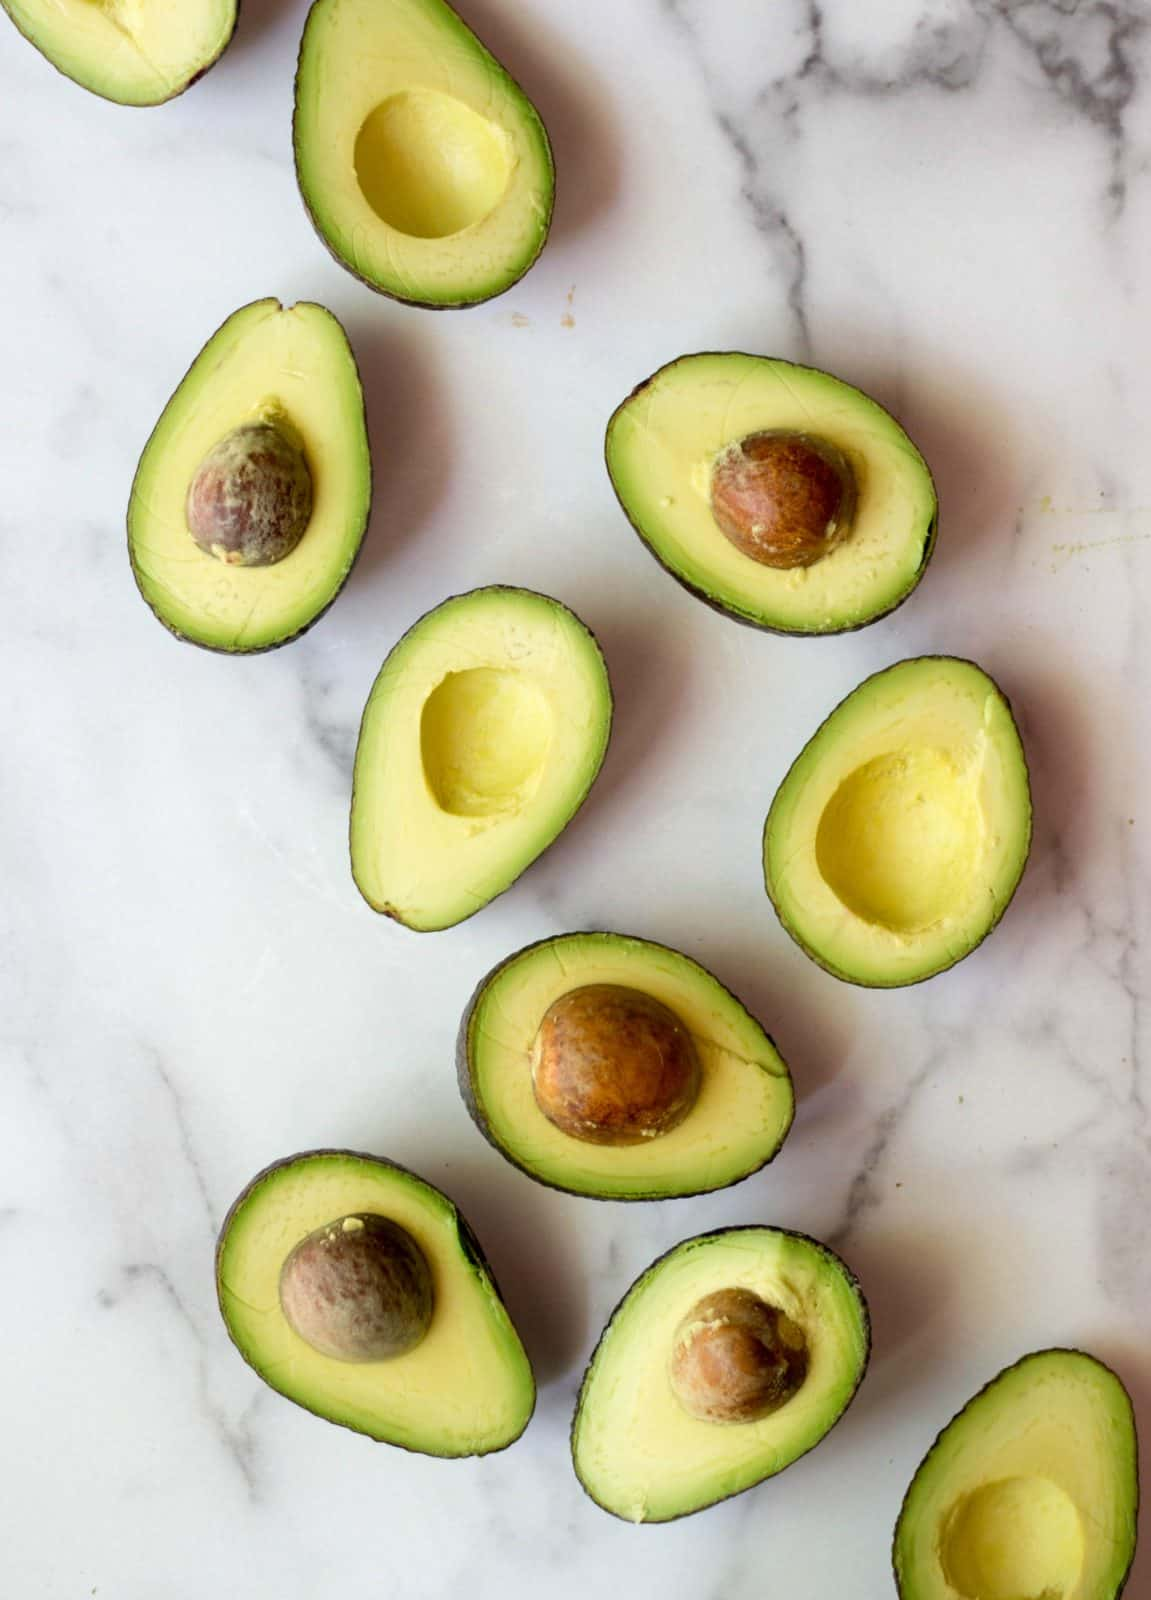 Halved avocados on a white marble background